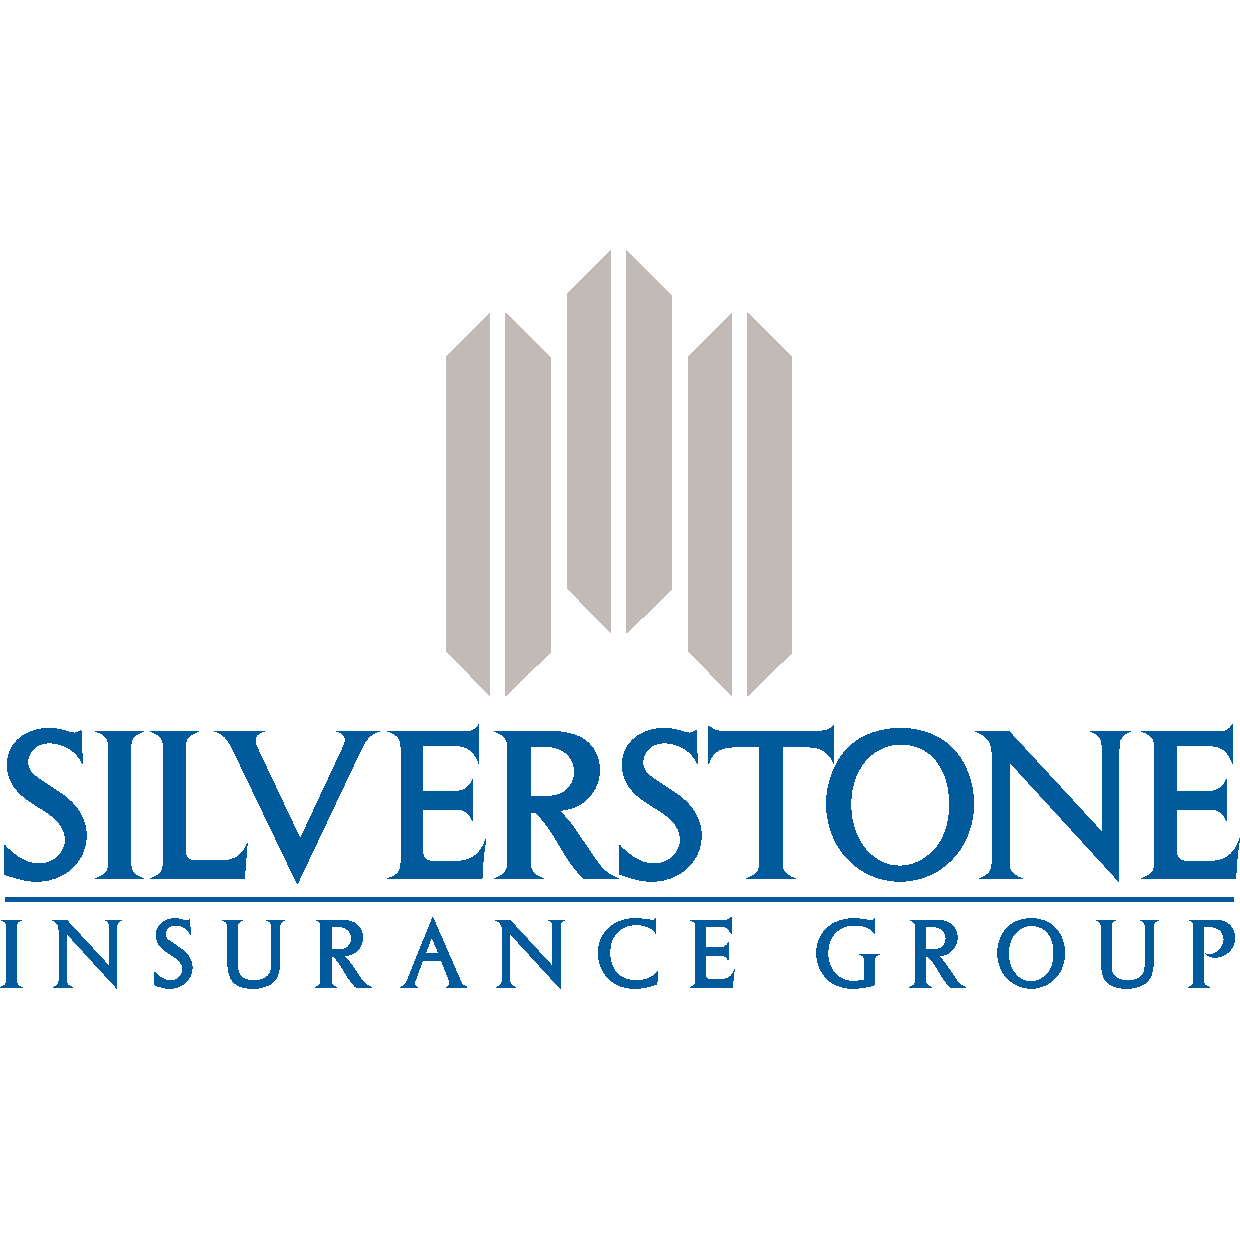 Silverstone Insurance Group - Rancho Cucamonga, CA - Insurance Agents